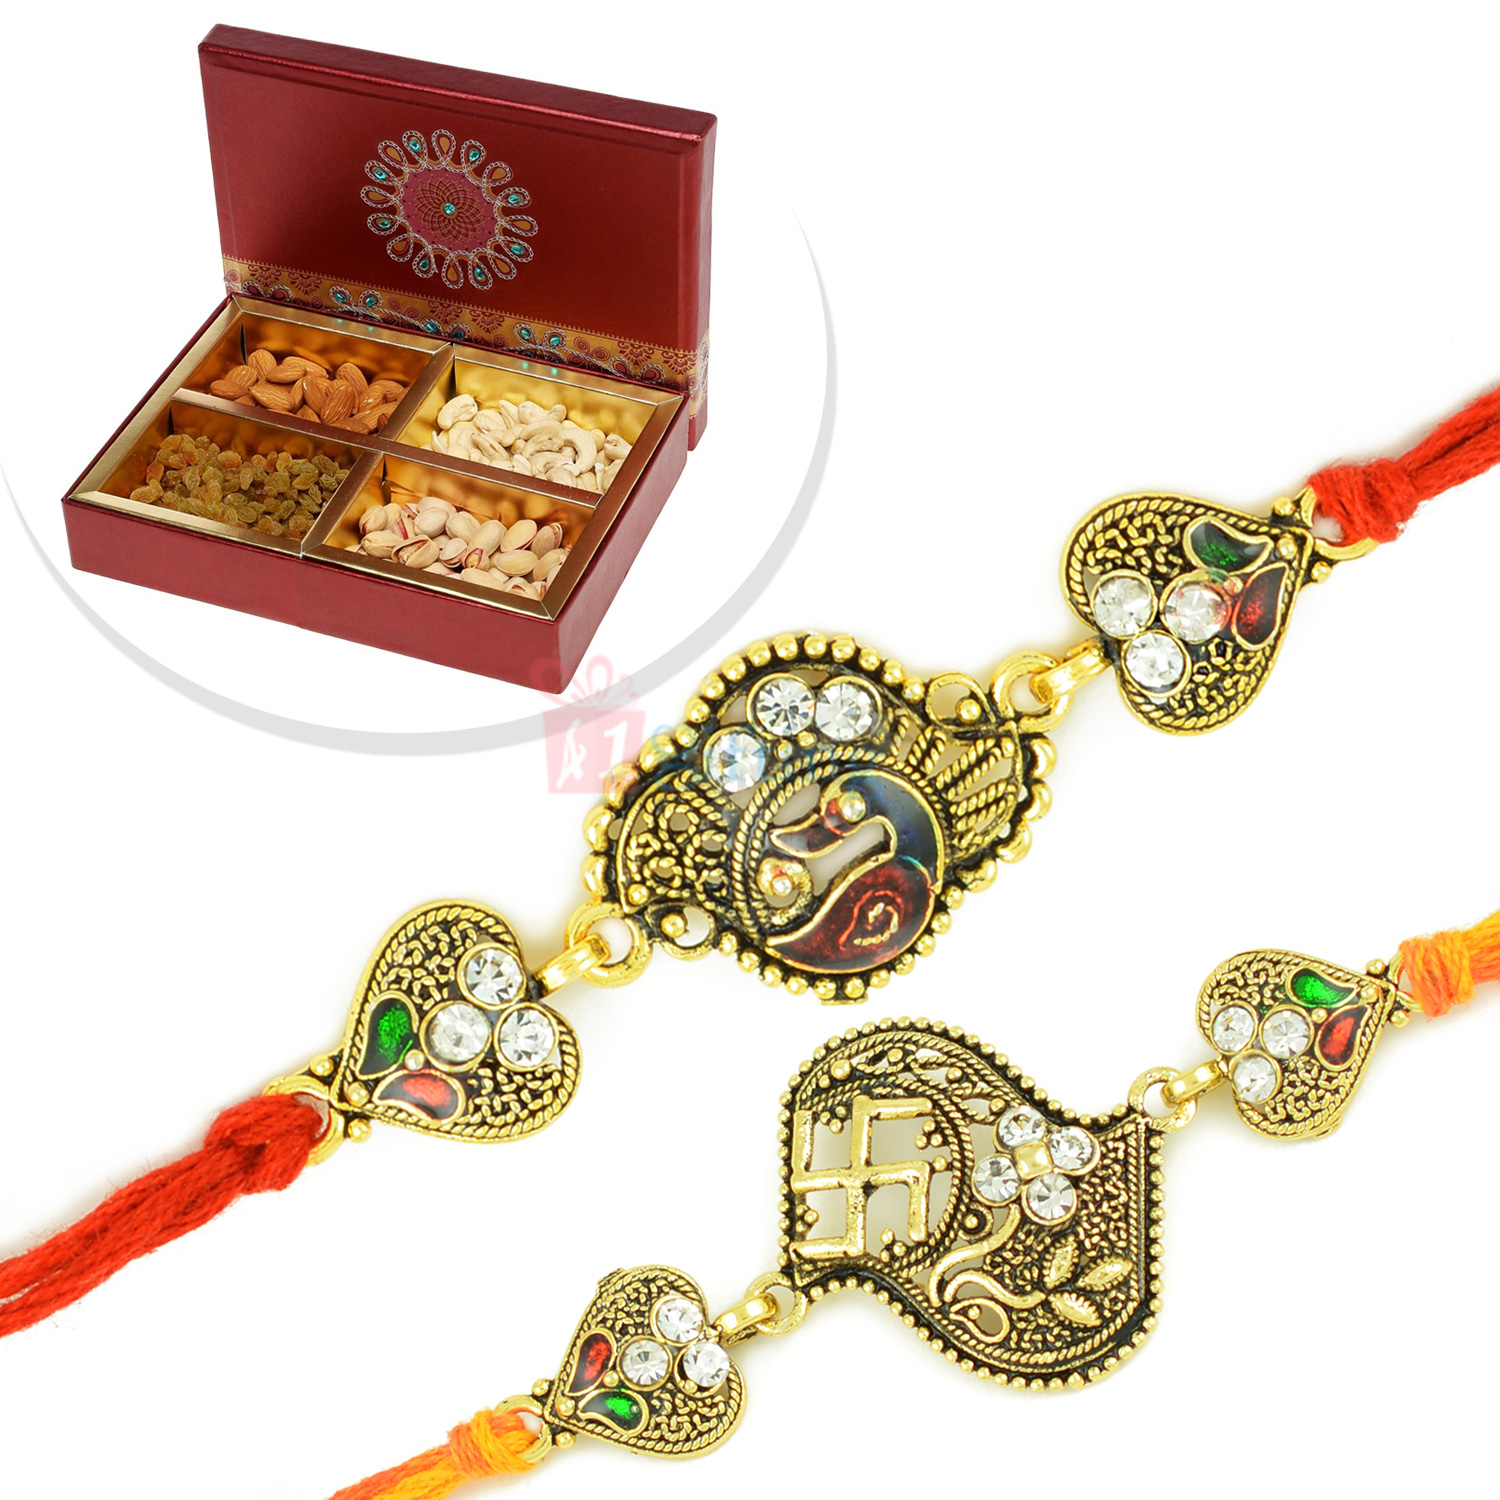 Antique Look Swastick Peacock 2 Rakhi Set with 4 type Dryfruits Box